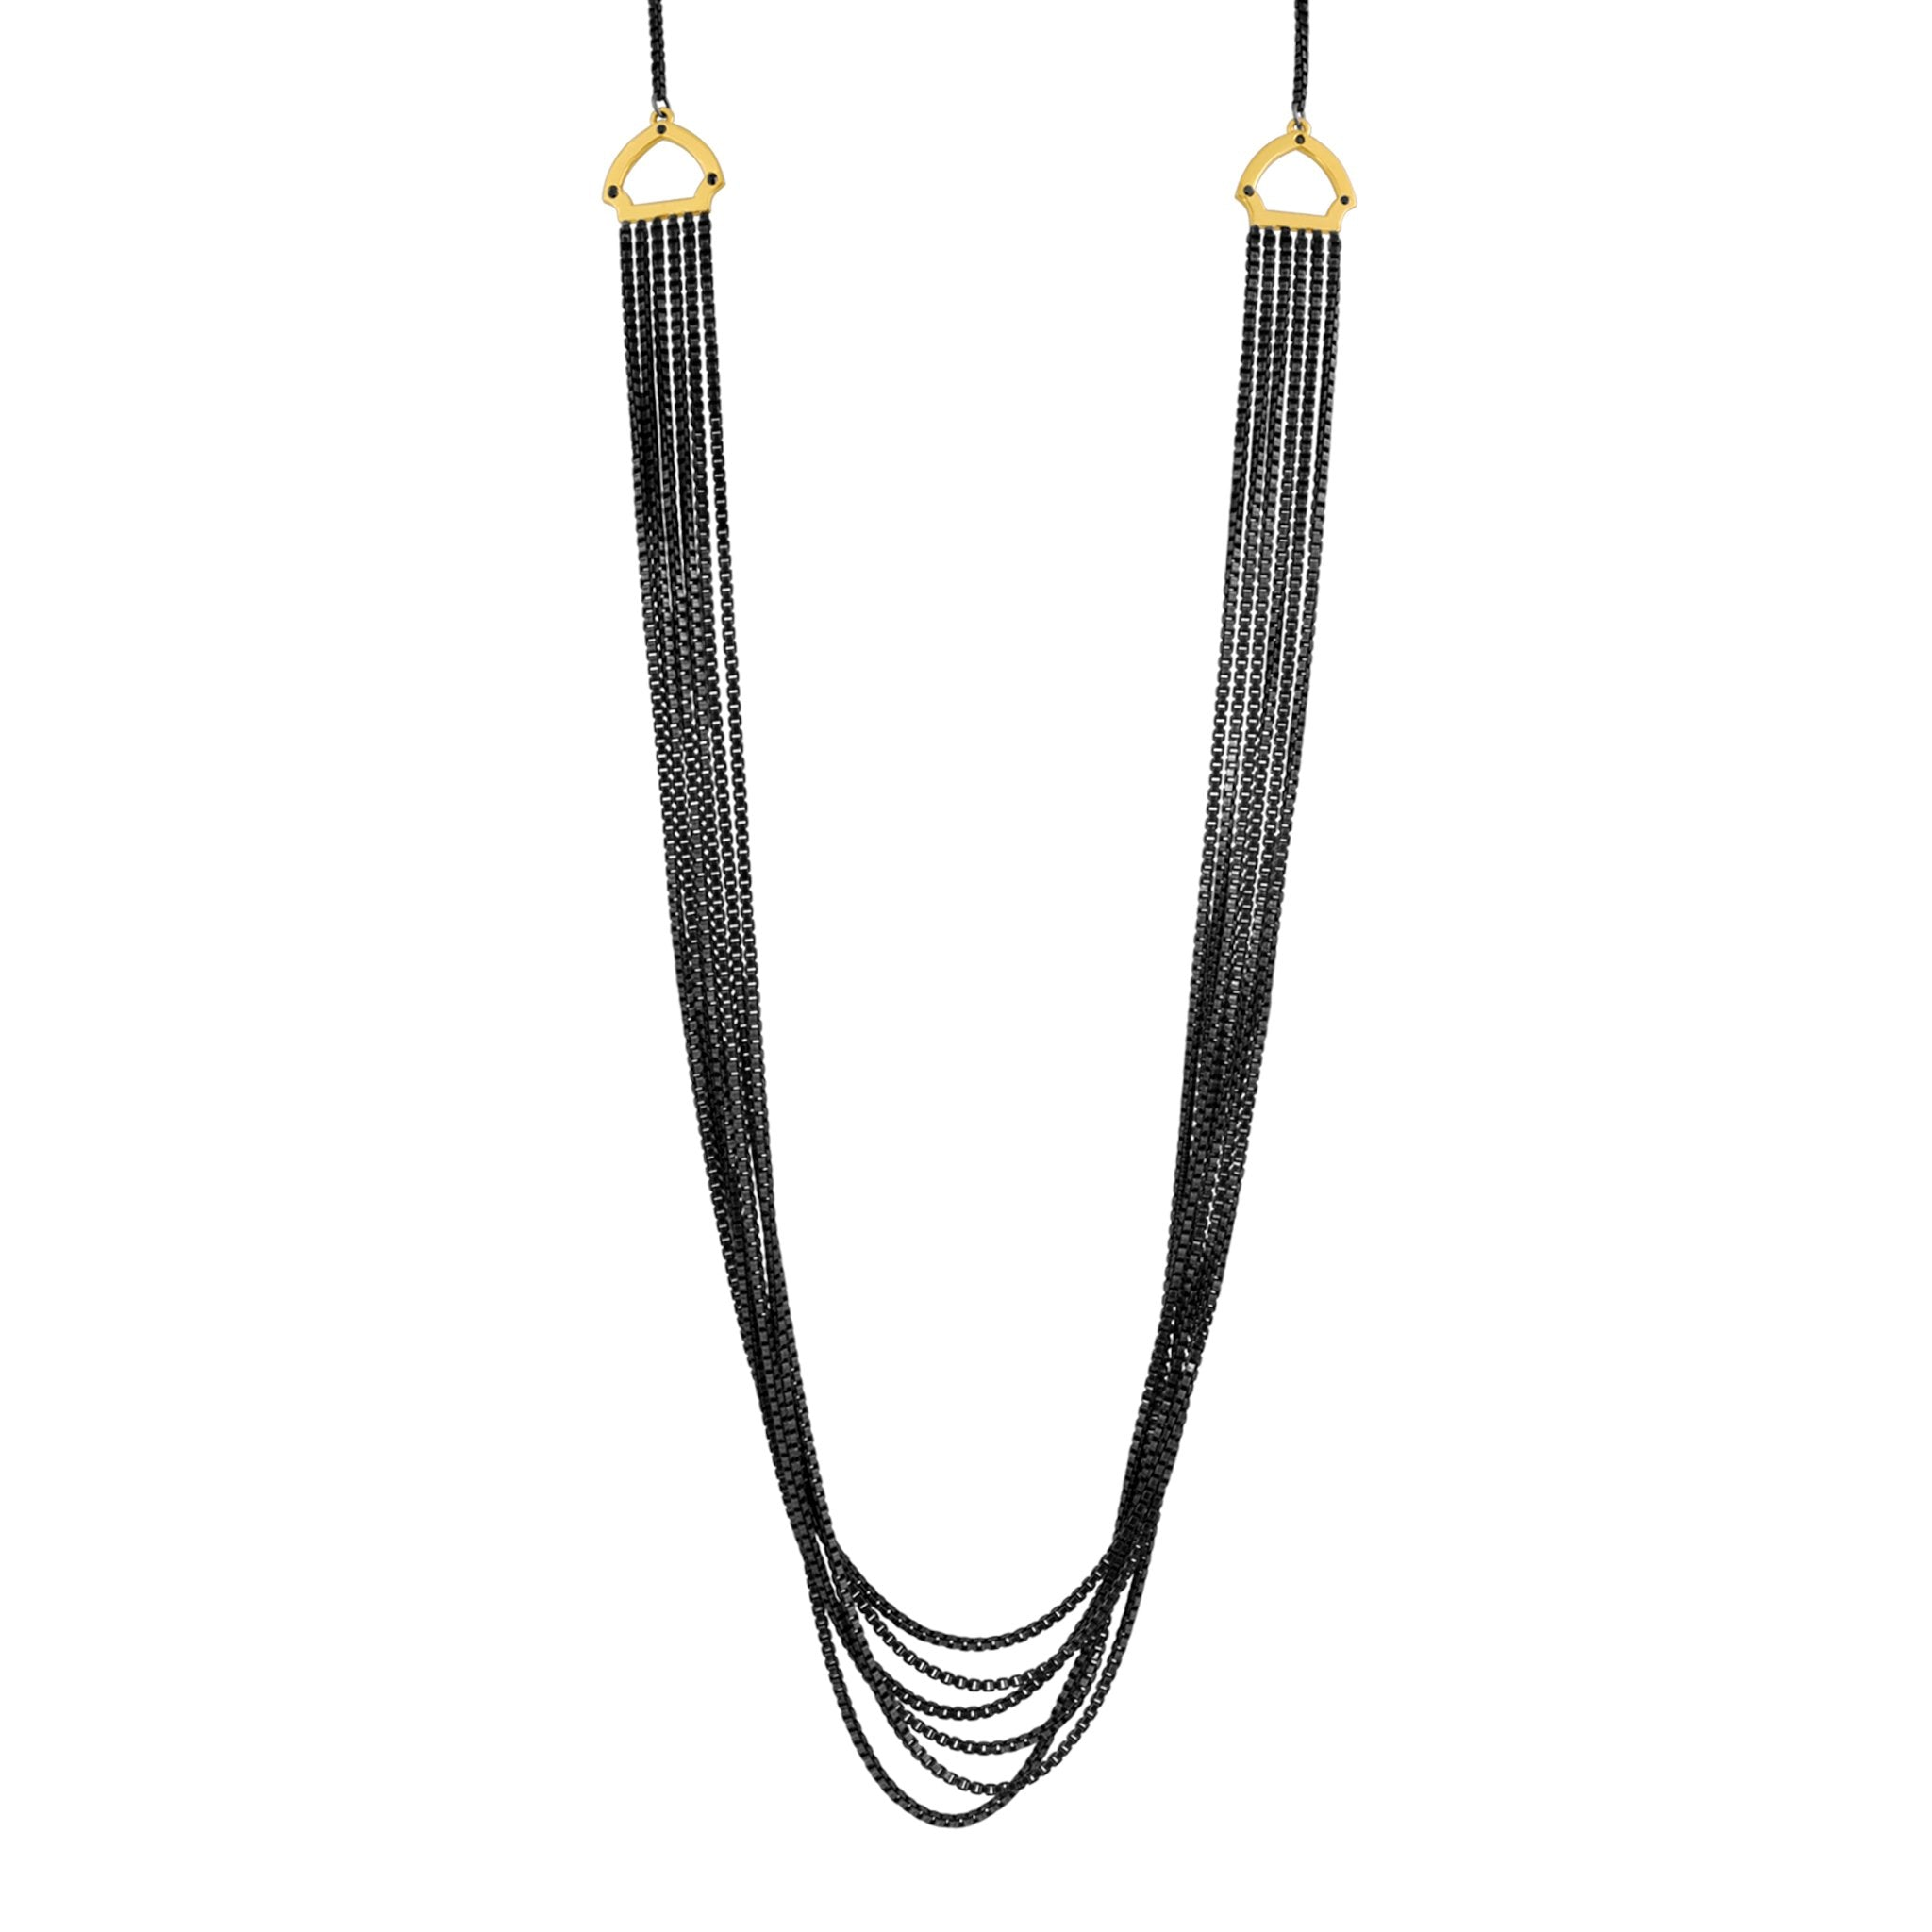 Hook Necklace: 14k Gold, Black Diamonds